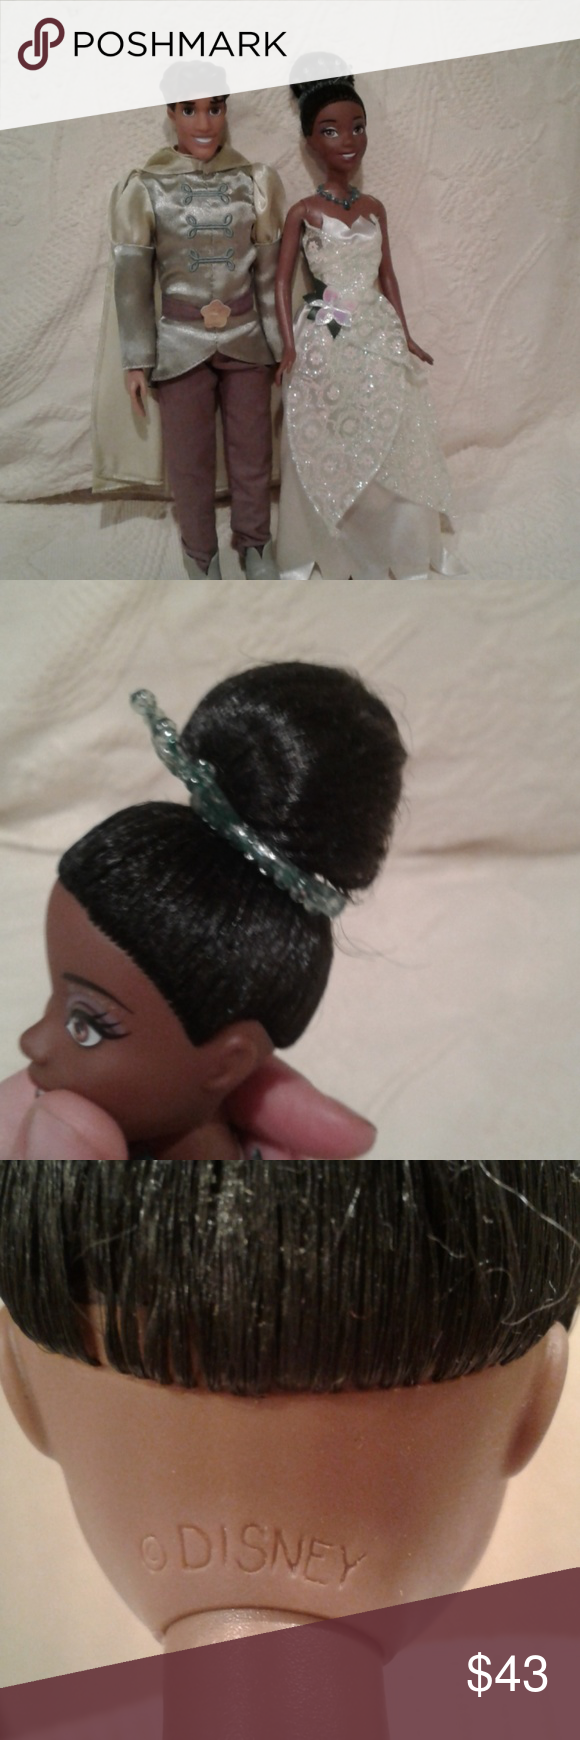 Official disney princess and the frog dolls official disney